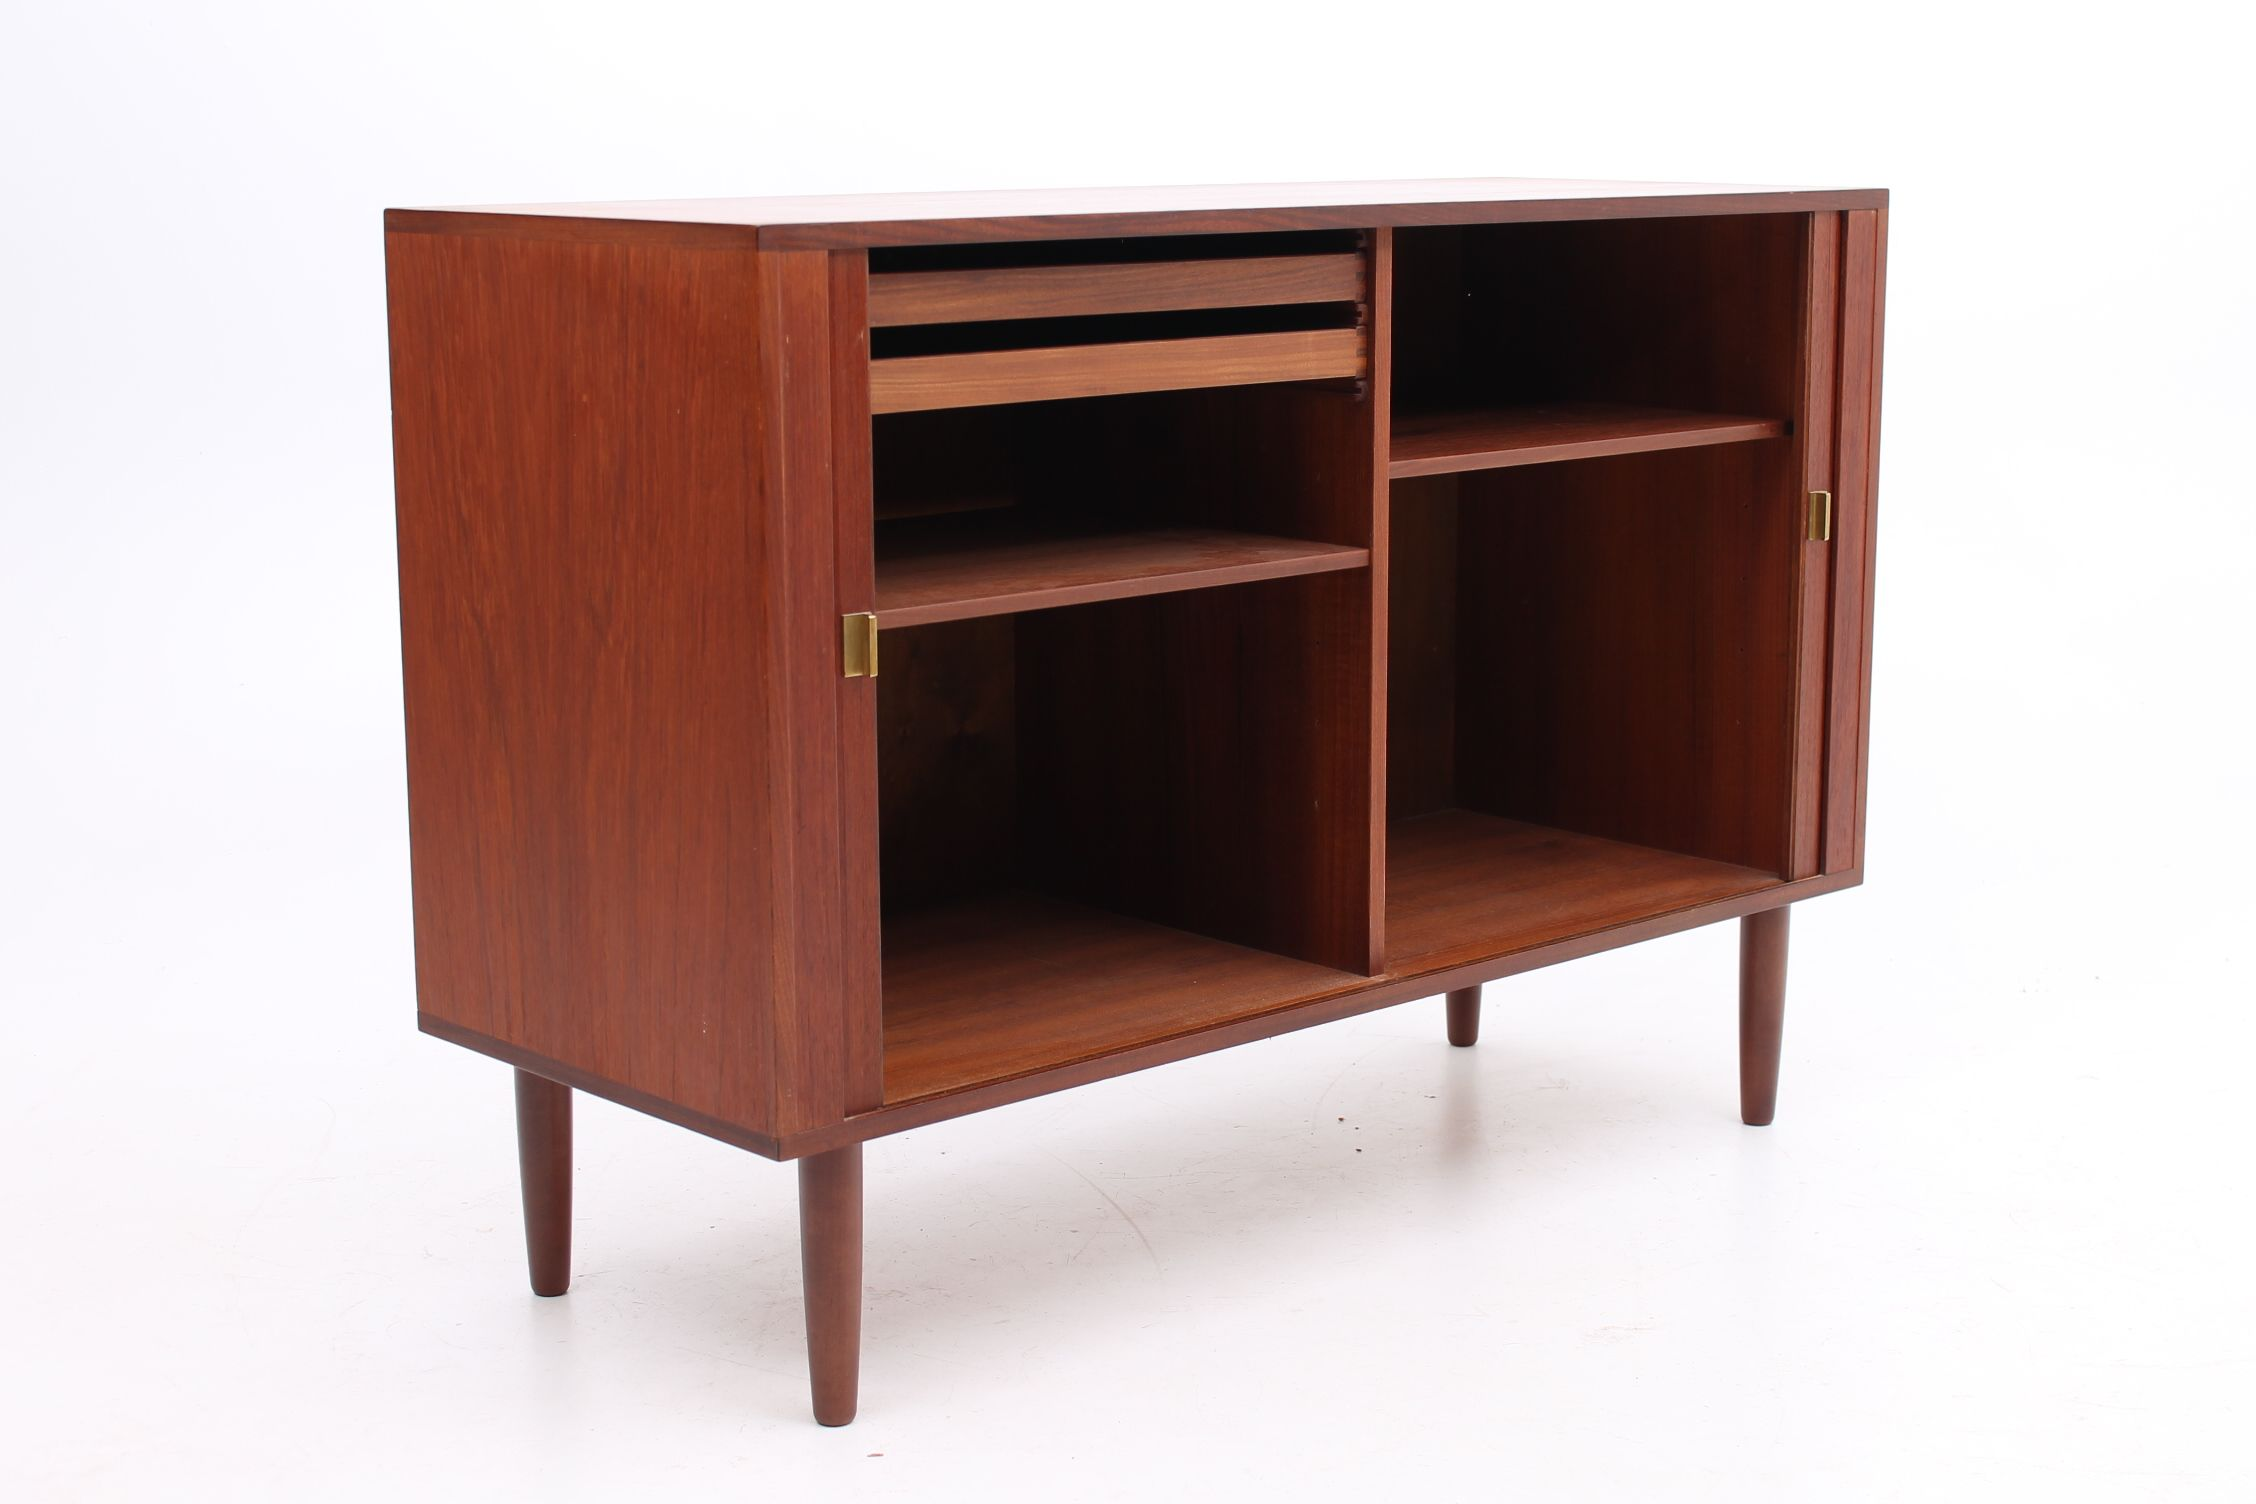 Roll Front And Brass Handles Adjustable Shelfs And Drawers Inside